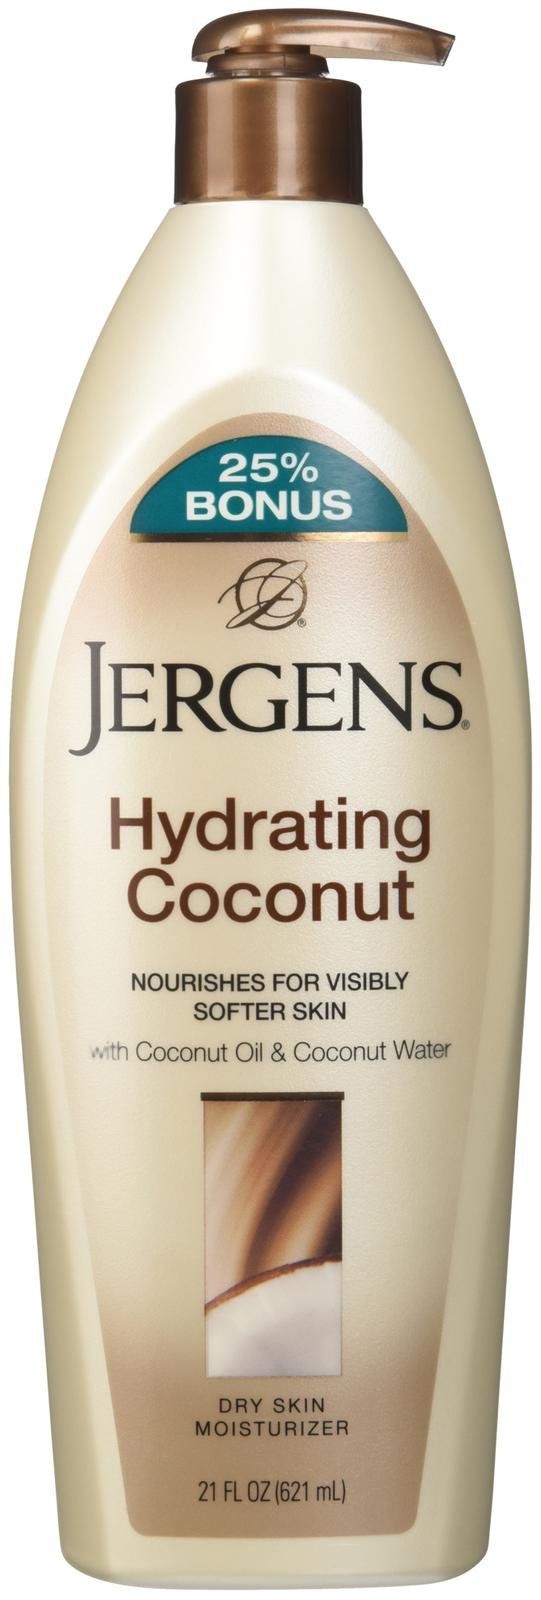 Jergens Hydrating Coconut Moisturizing Lotion